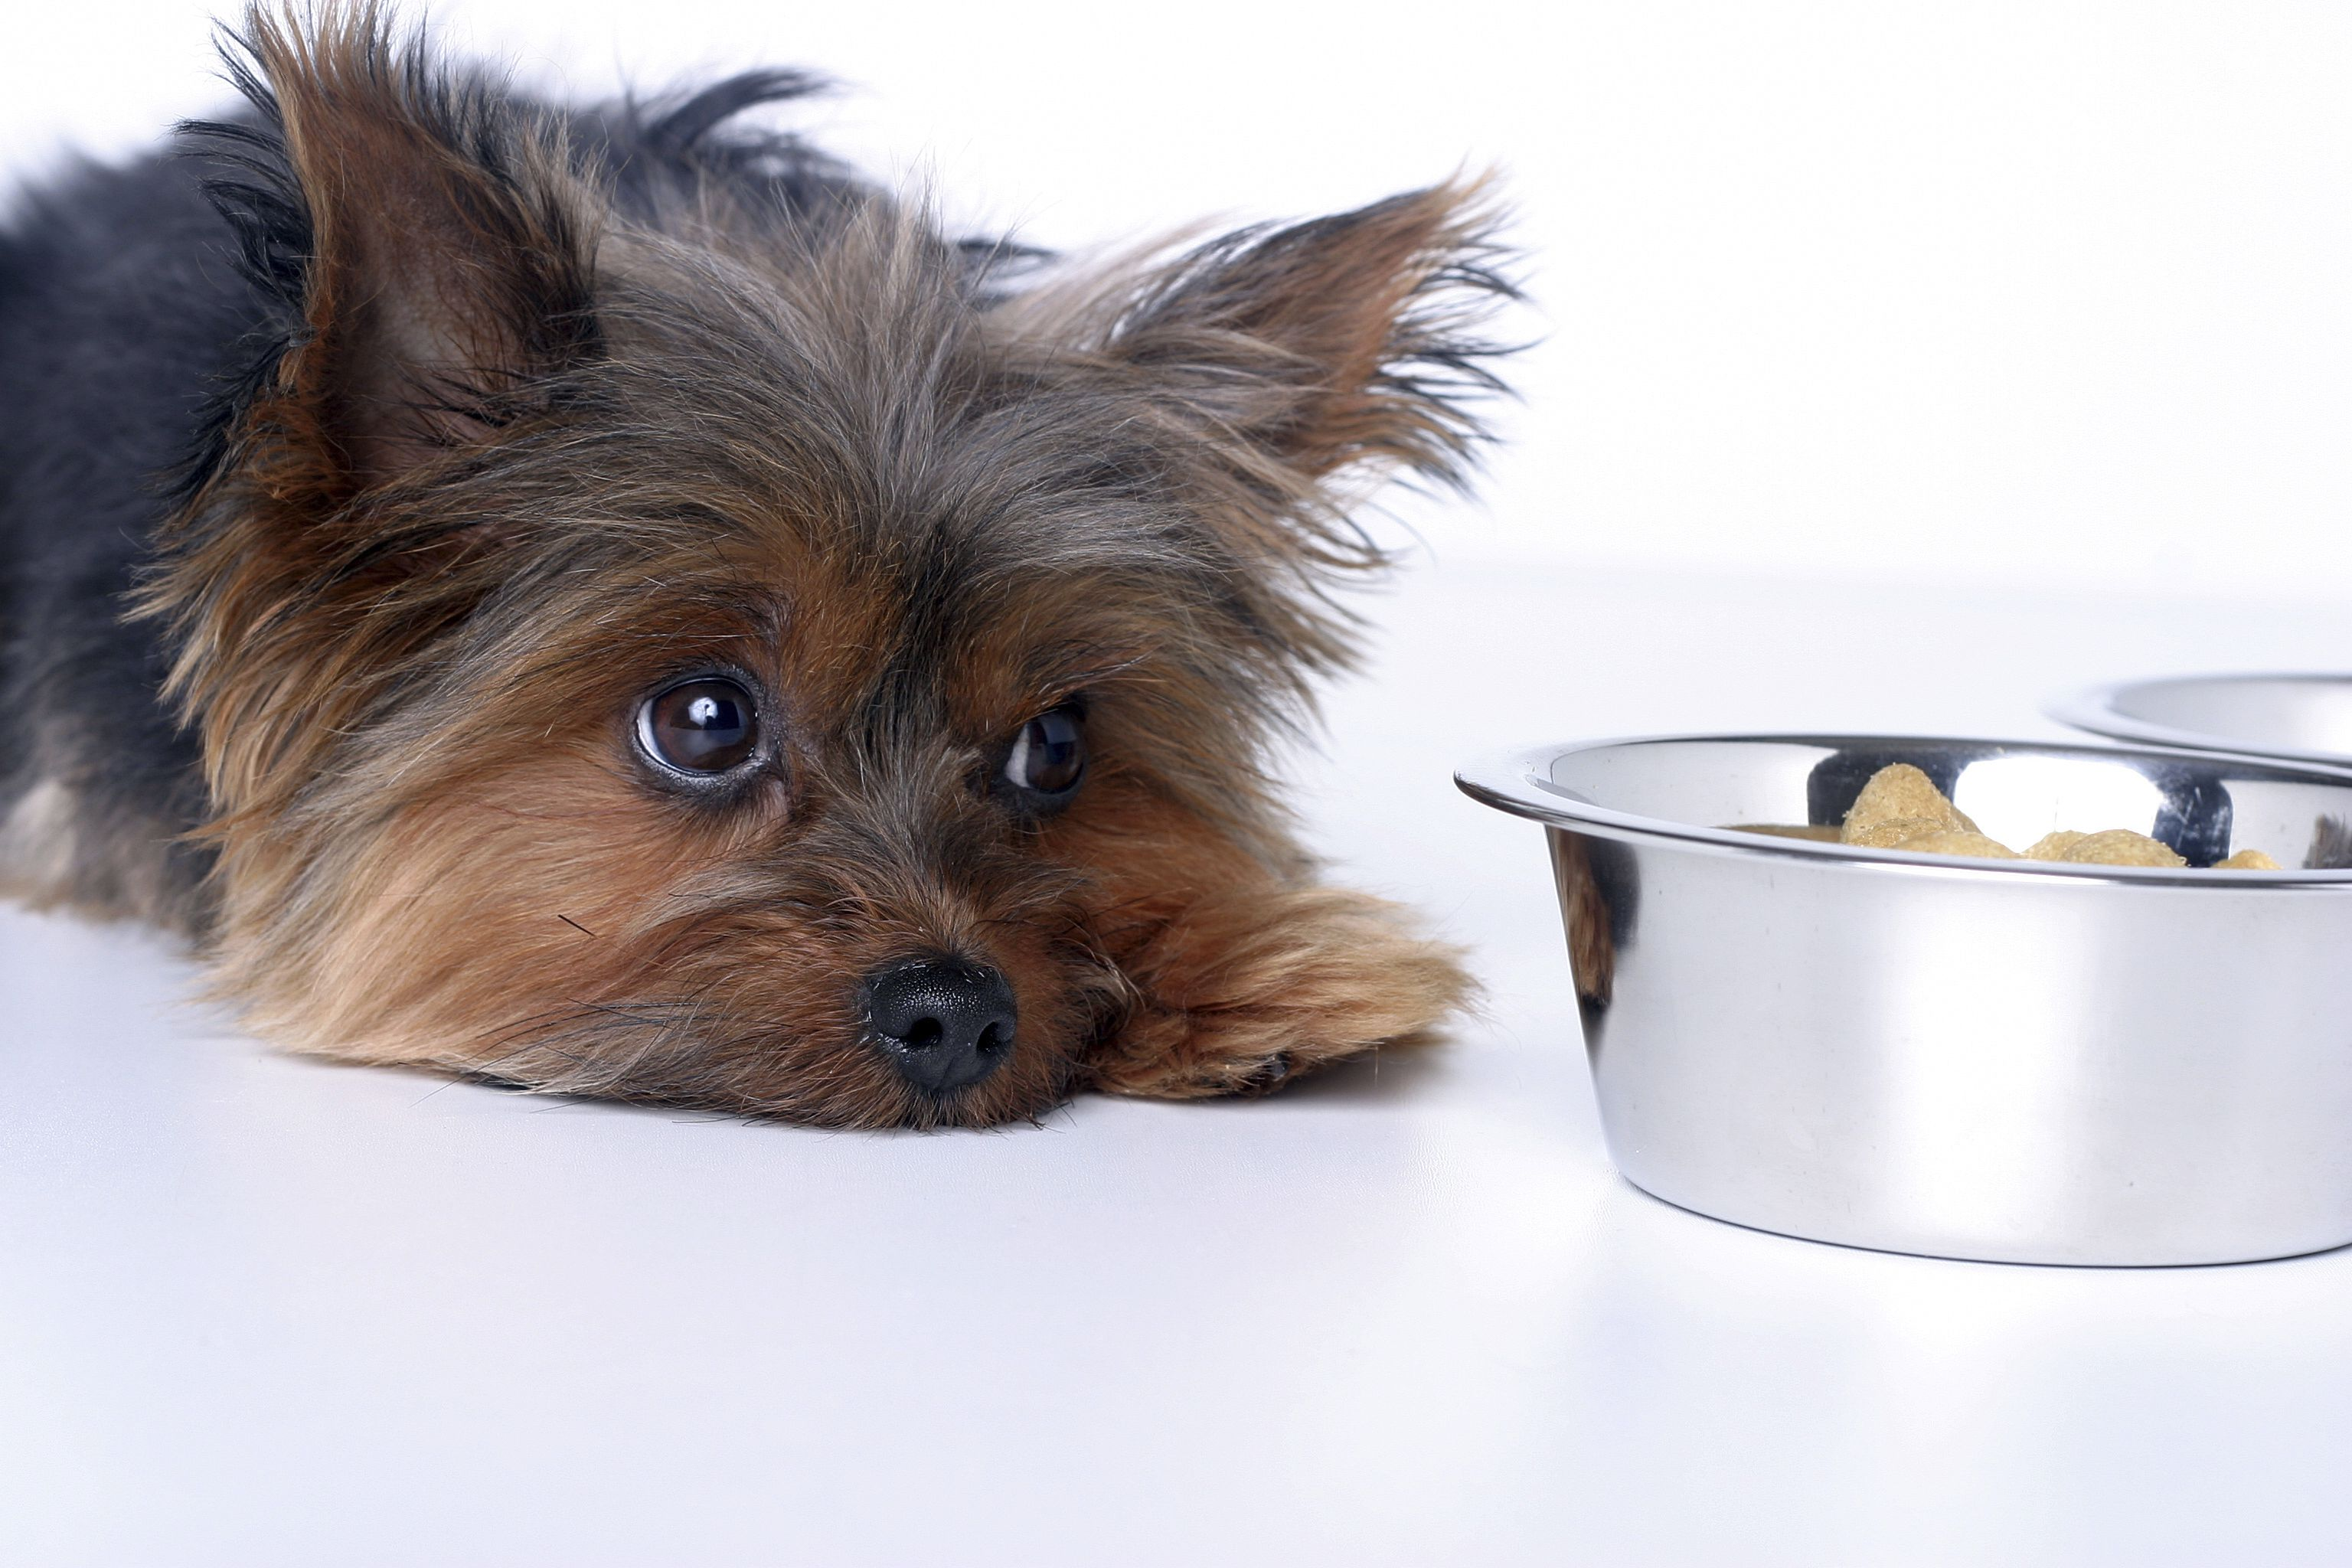 Liver Disease in Dogs Symptoms and Treatment Information